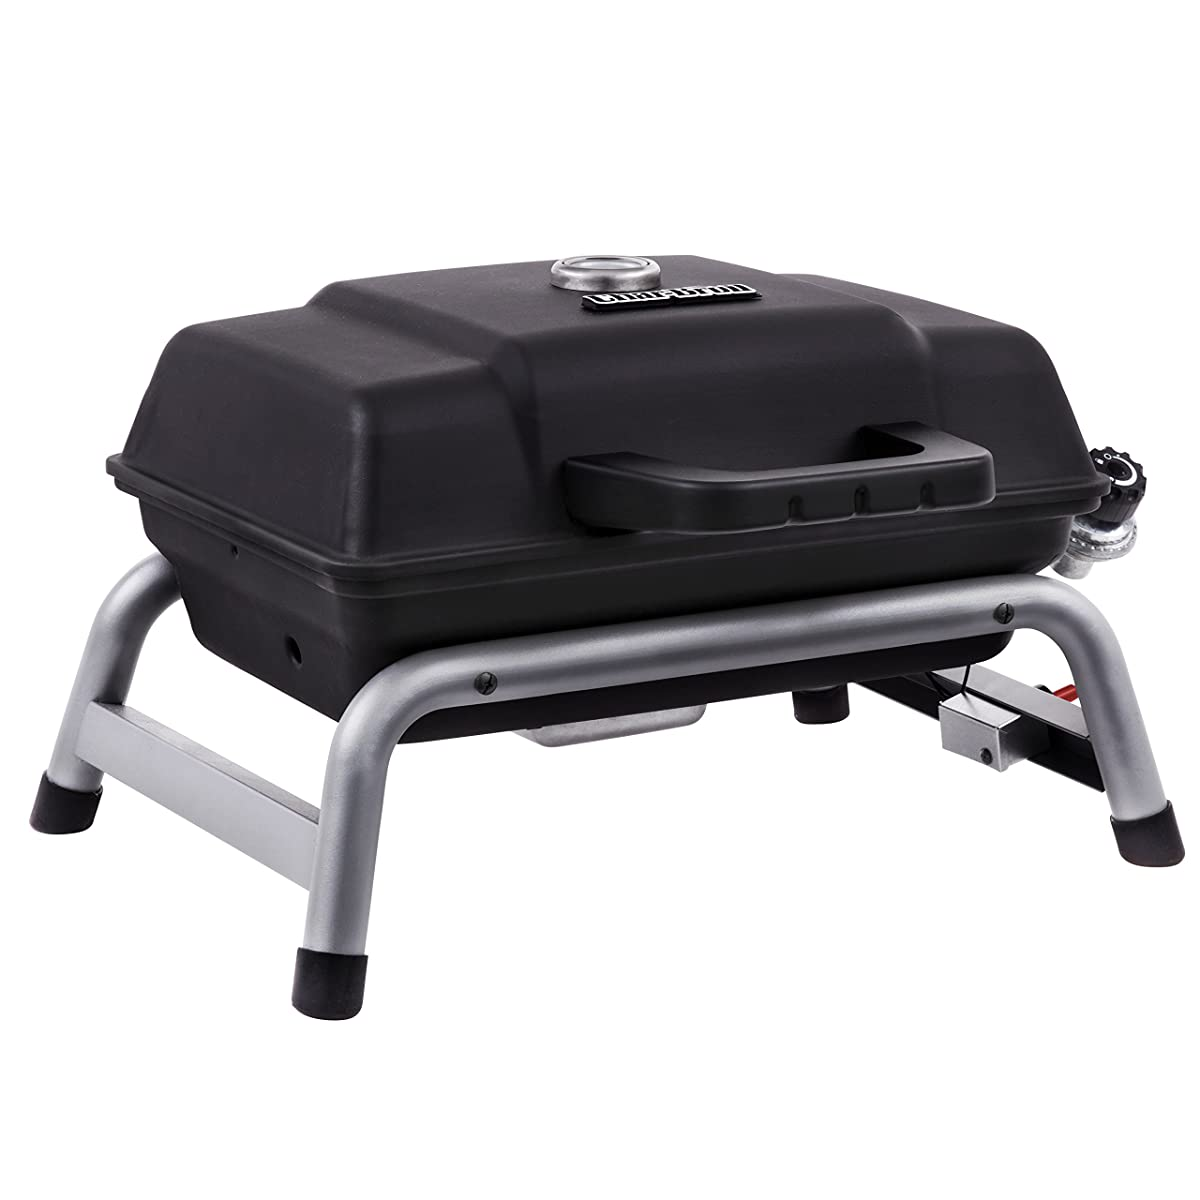 Char-Broil 240 Portable Gas Grill